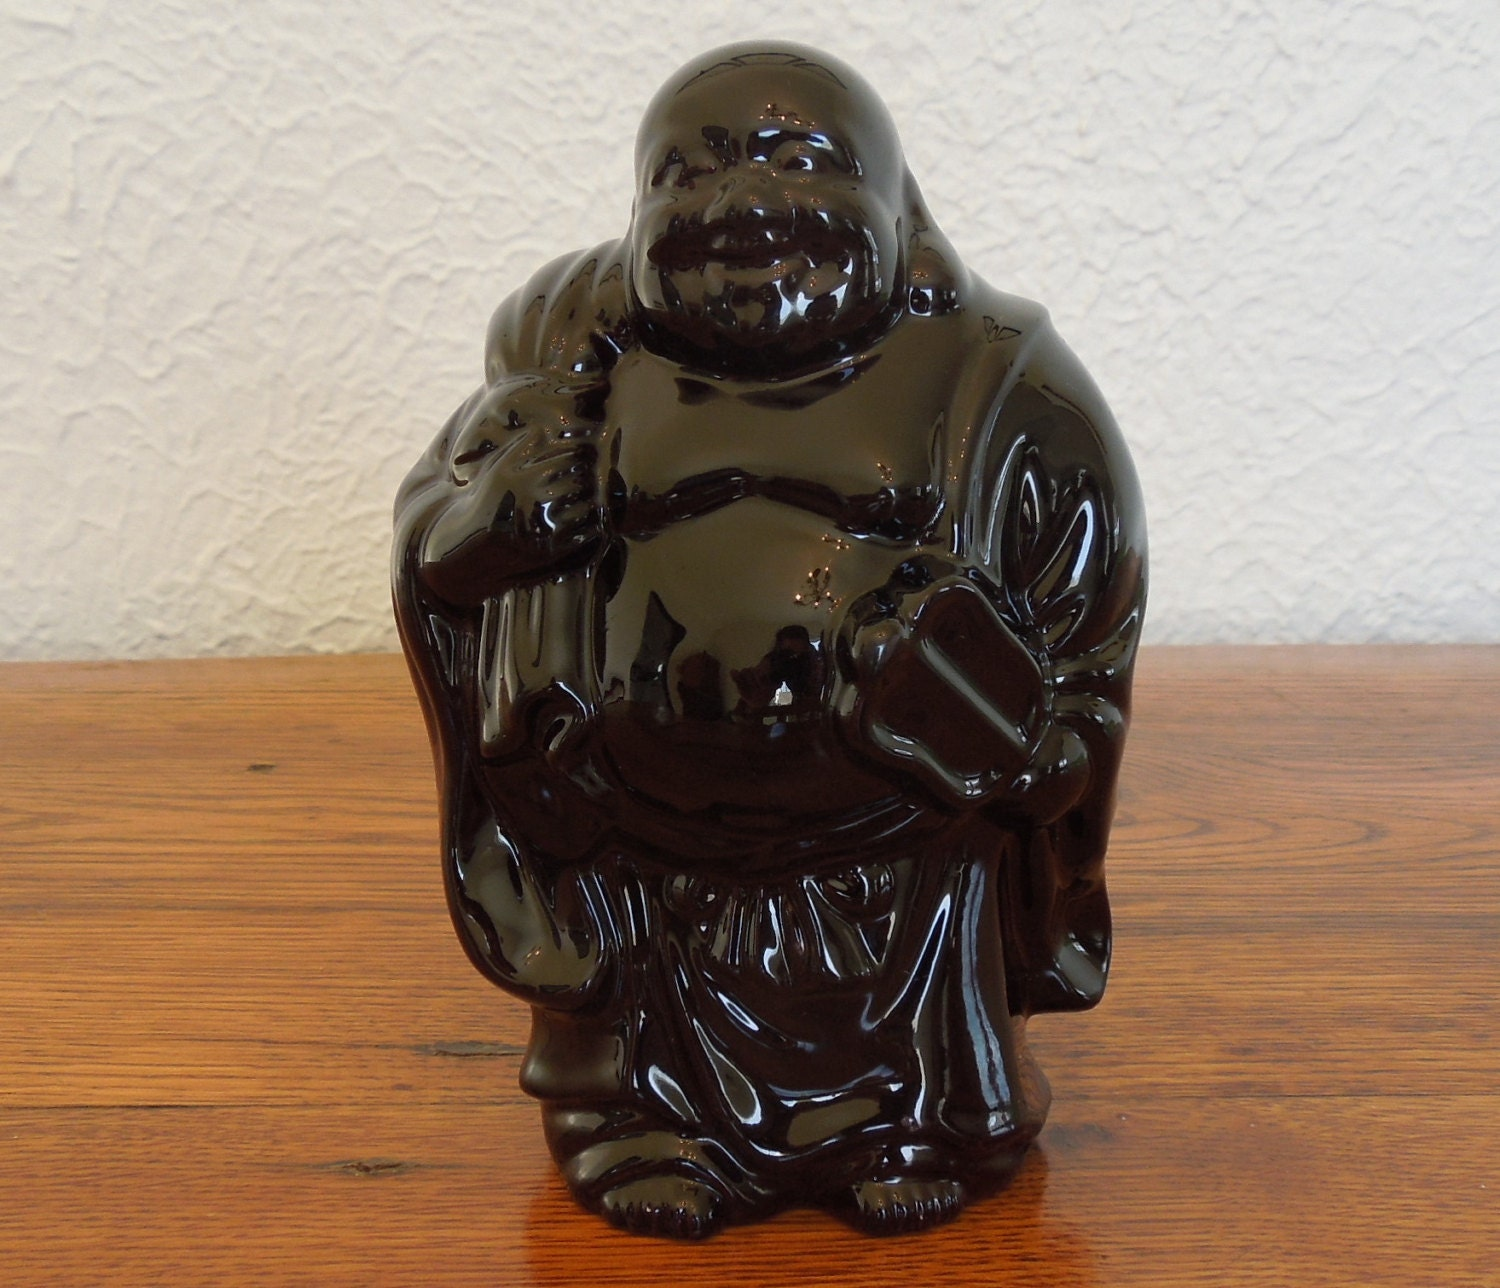 Buy Antique Handcrafted Buddha Lantern For Corporate: Vintage Ceramic Laughing Buddha Statue 6